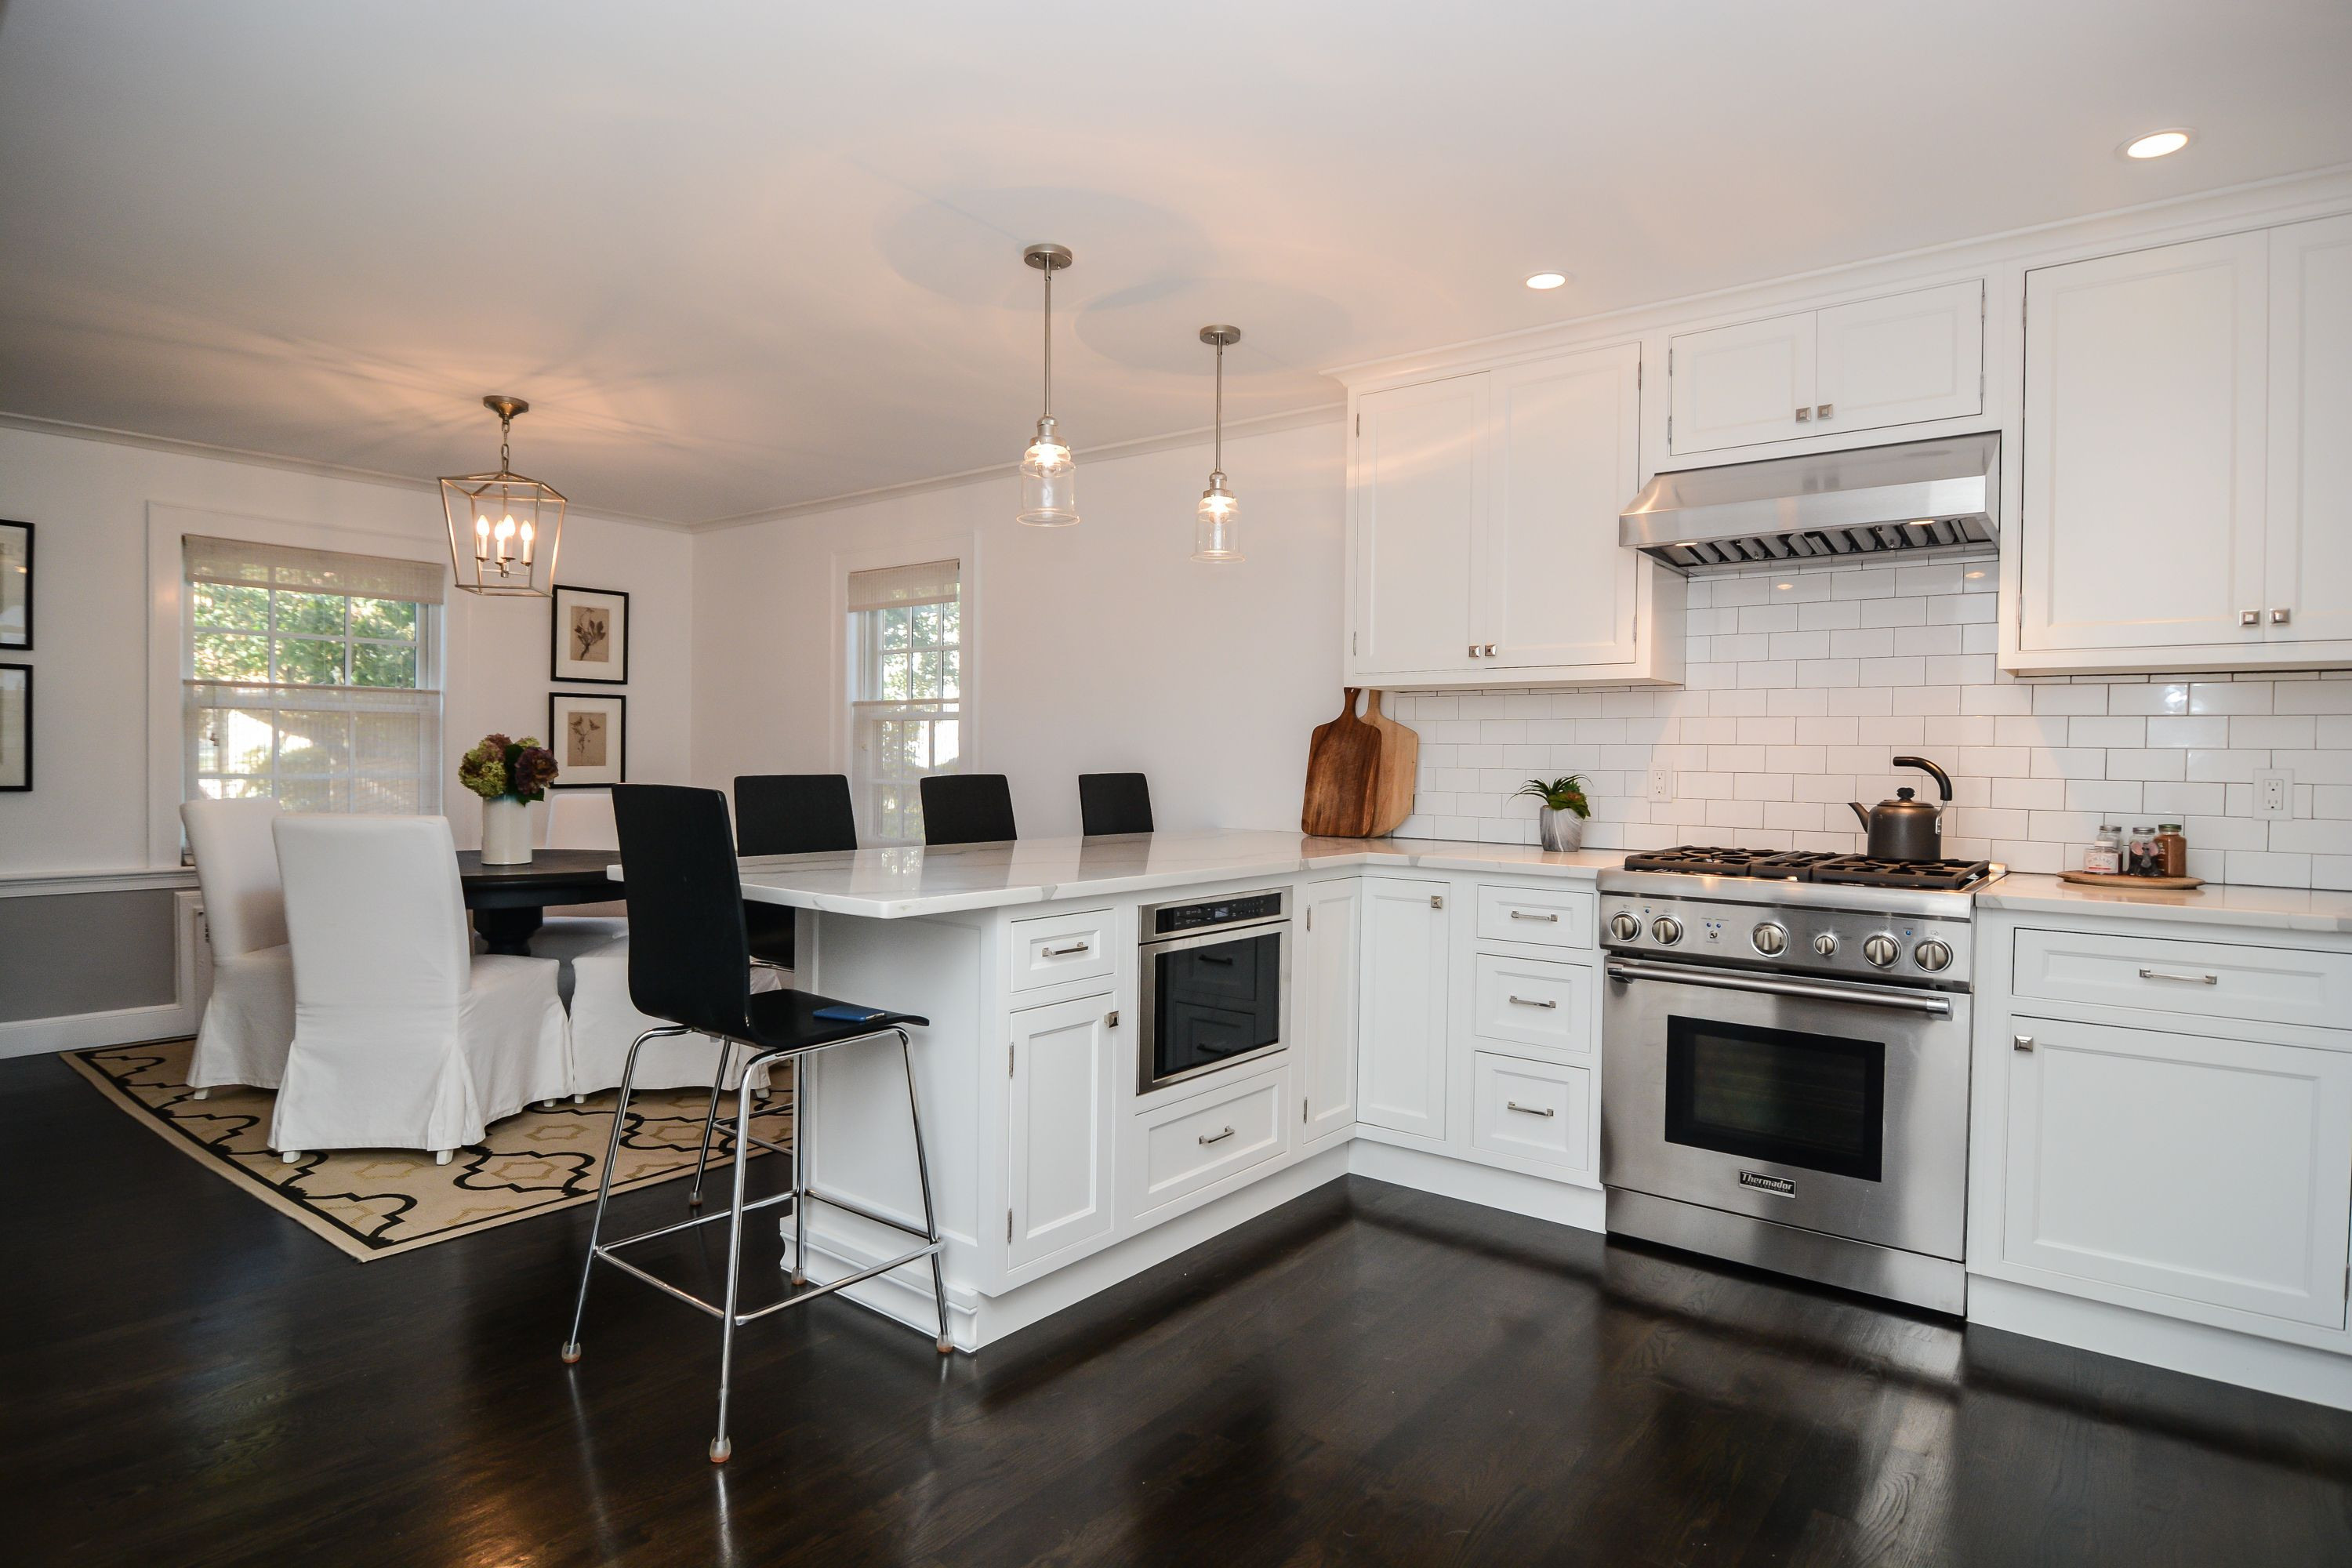 28 Awesome Pictures Of Kitchens With Dark Hardwood Floors Unique